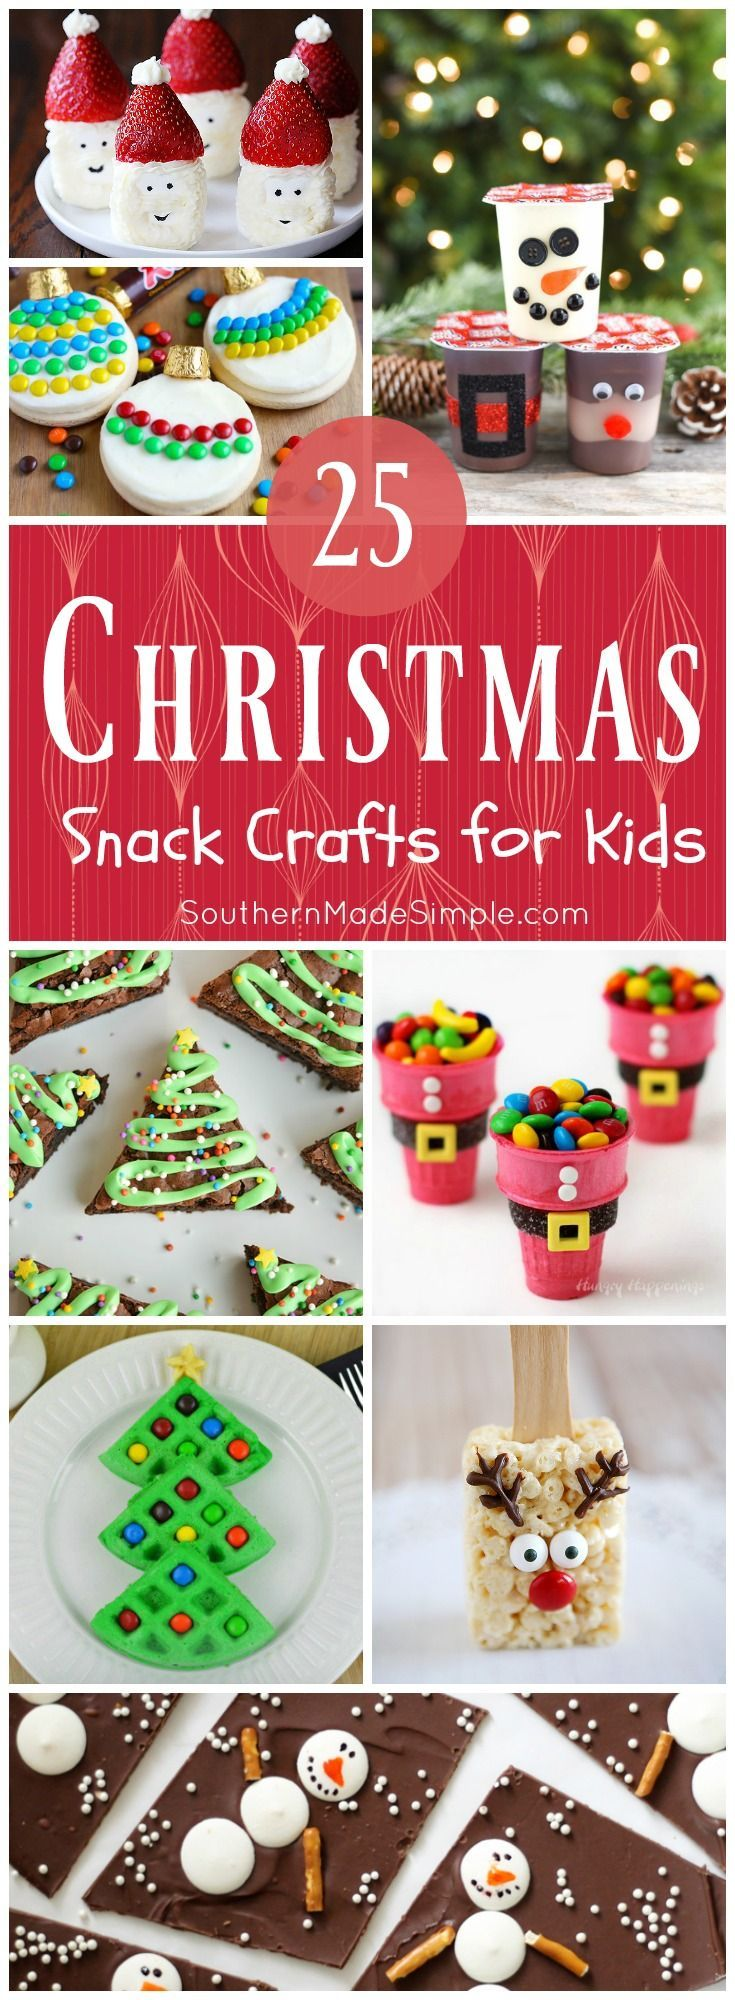 61 best christmas images on pinterest christmas desserts 25 edible christmas crafts for kids forumfinder Images